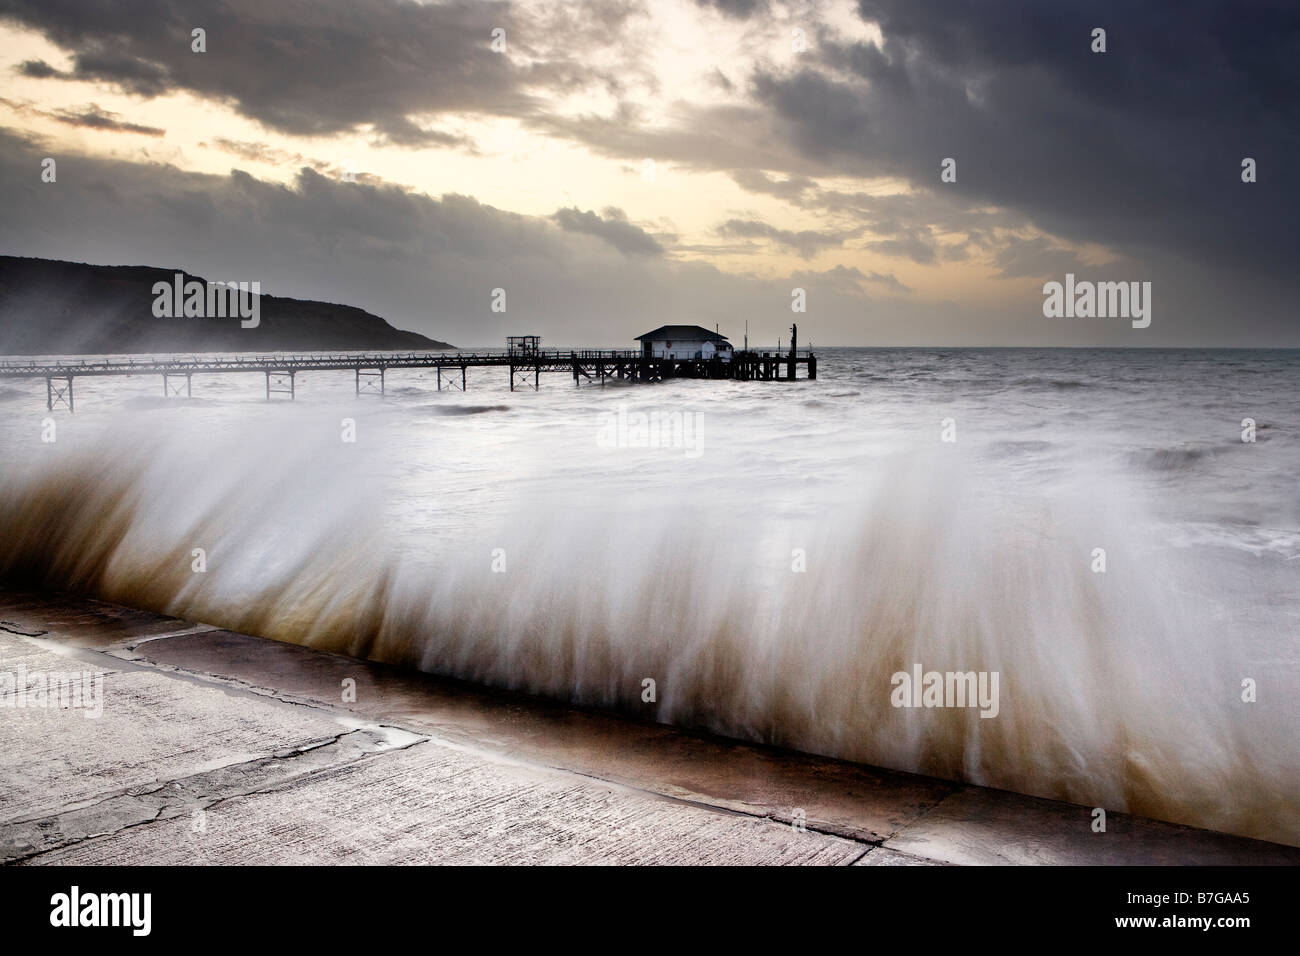 Rough seas at Totland Bay, Isle of Wight - Stock Image